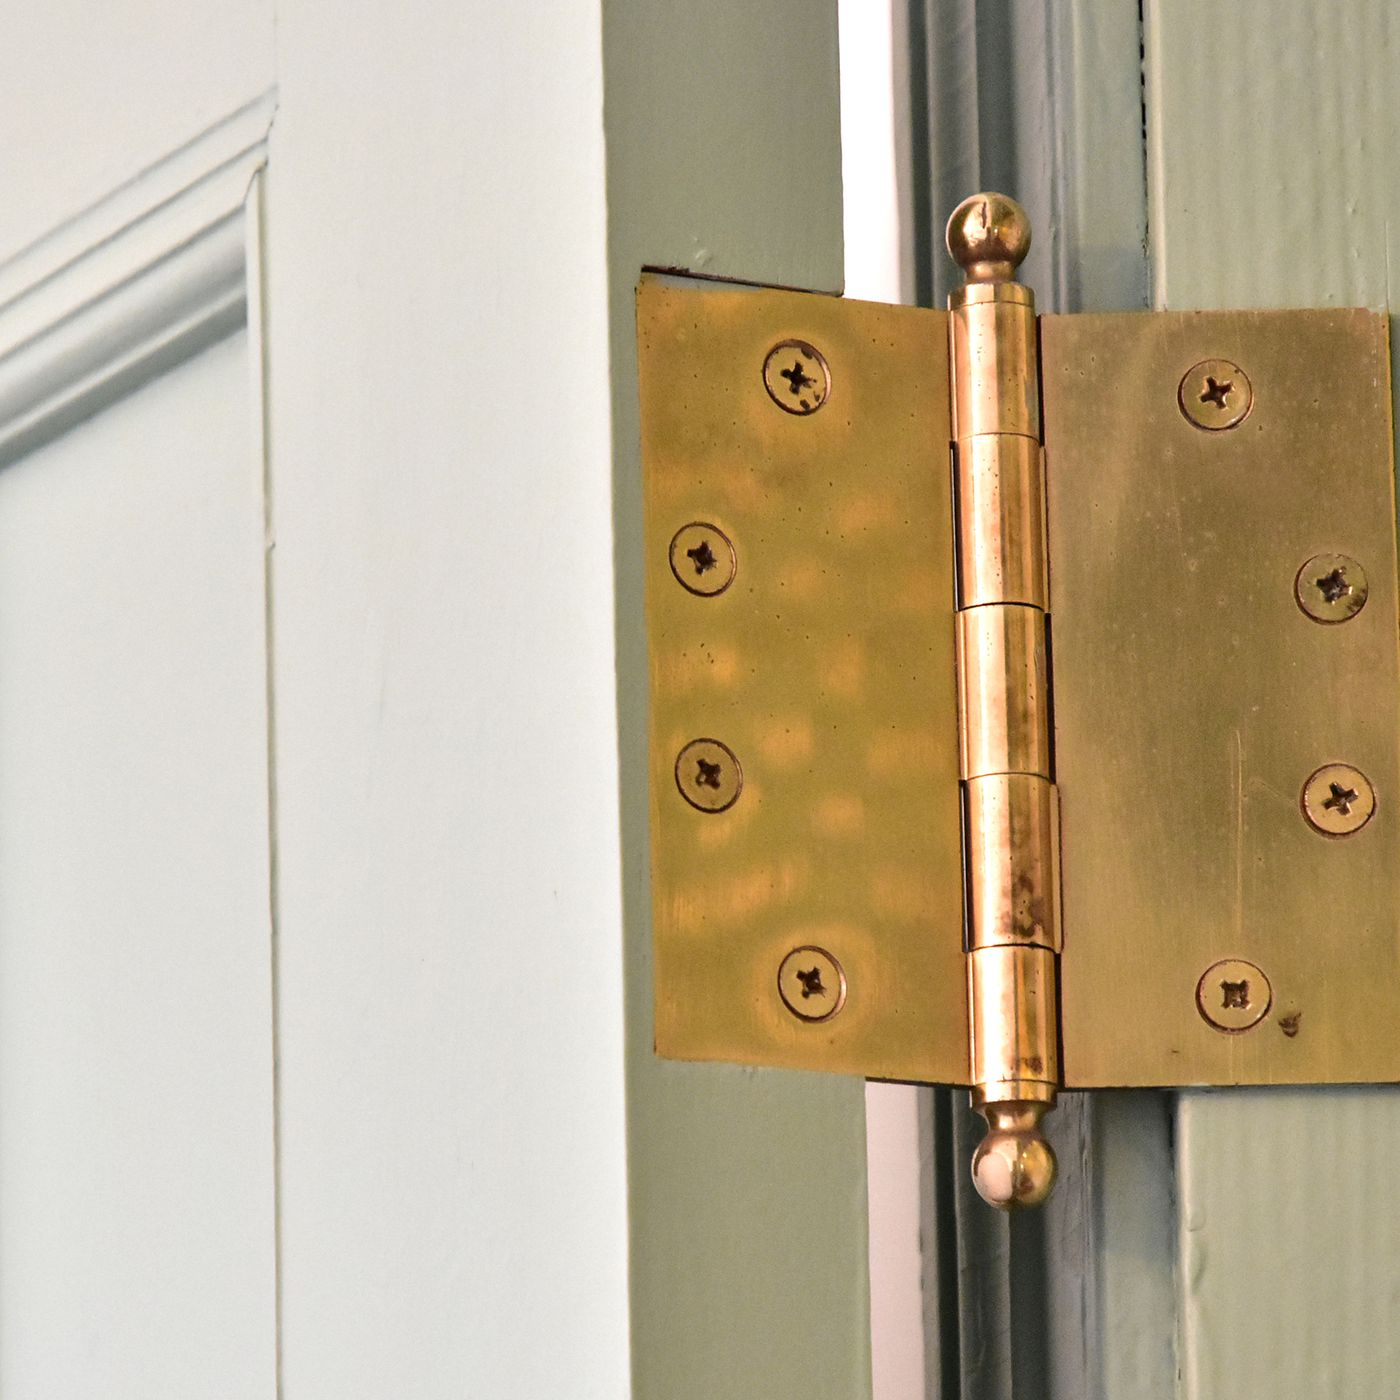 How To Fix Loose Door Hinges With Stripped Screws This Old House